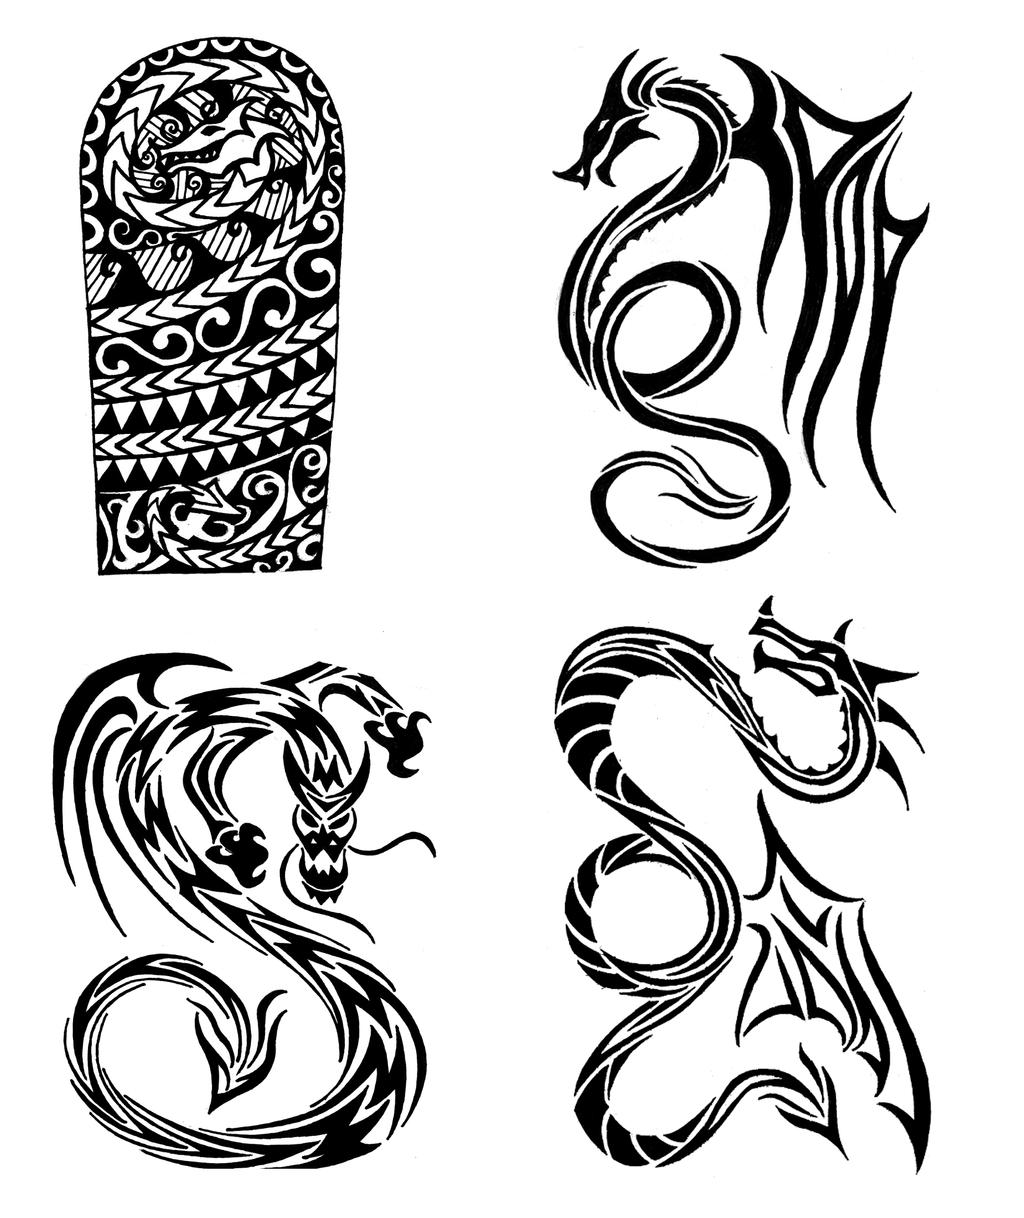 ... Tribal Tattoos And Their Meanings Tribal dragons tattoo designs